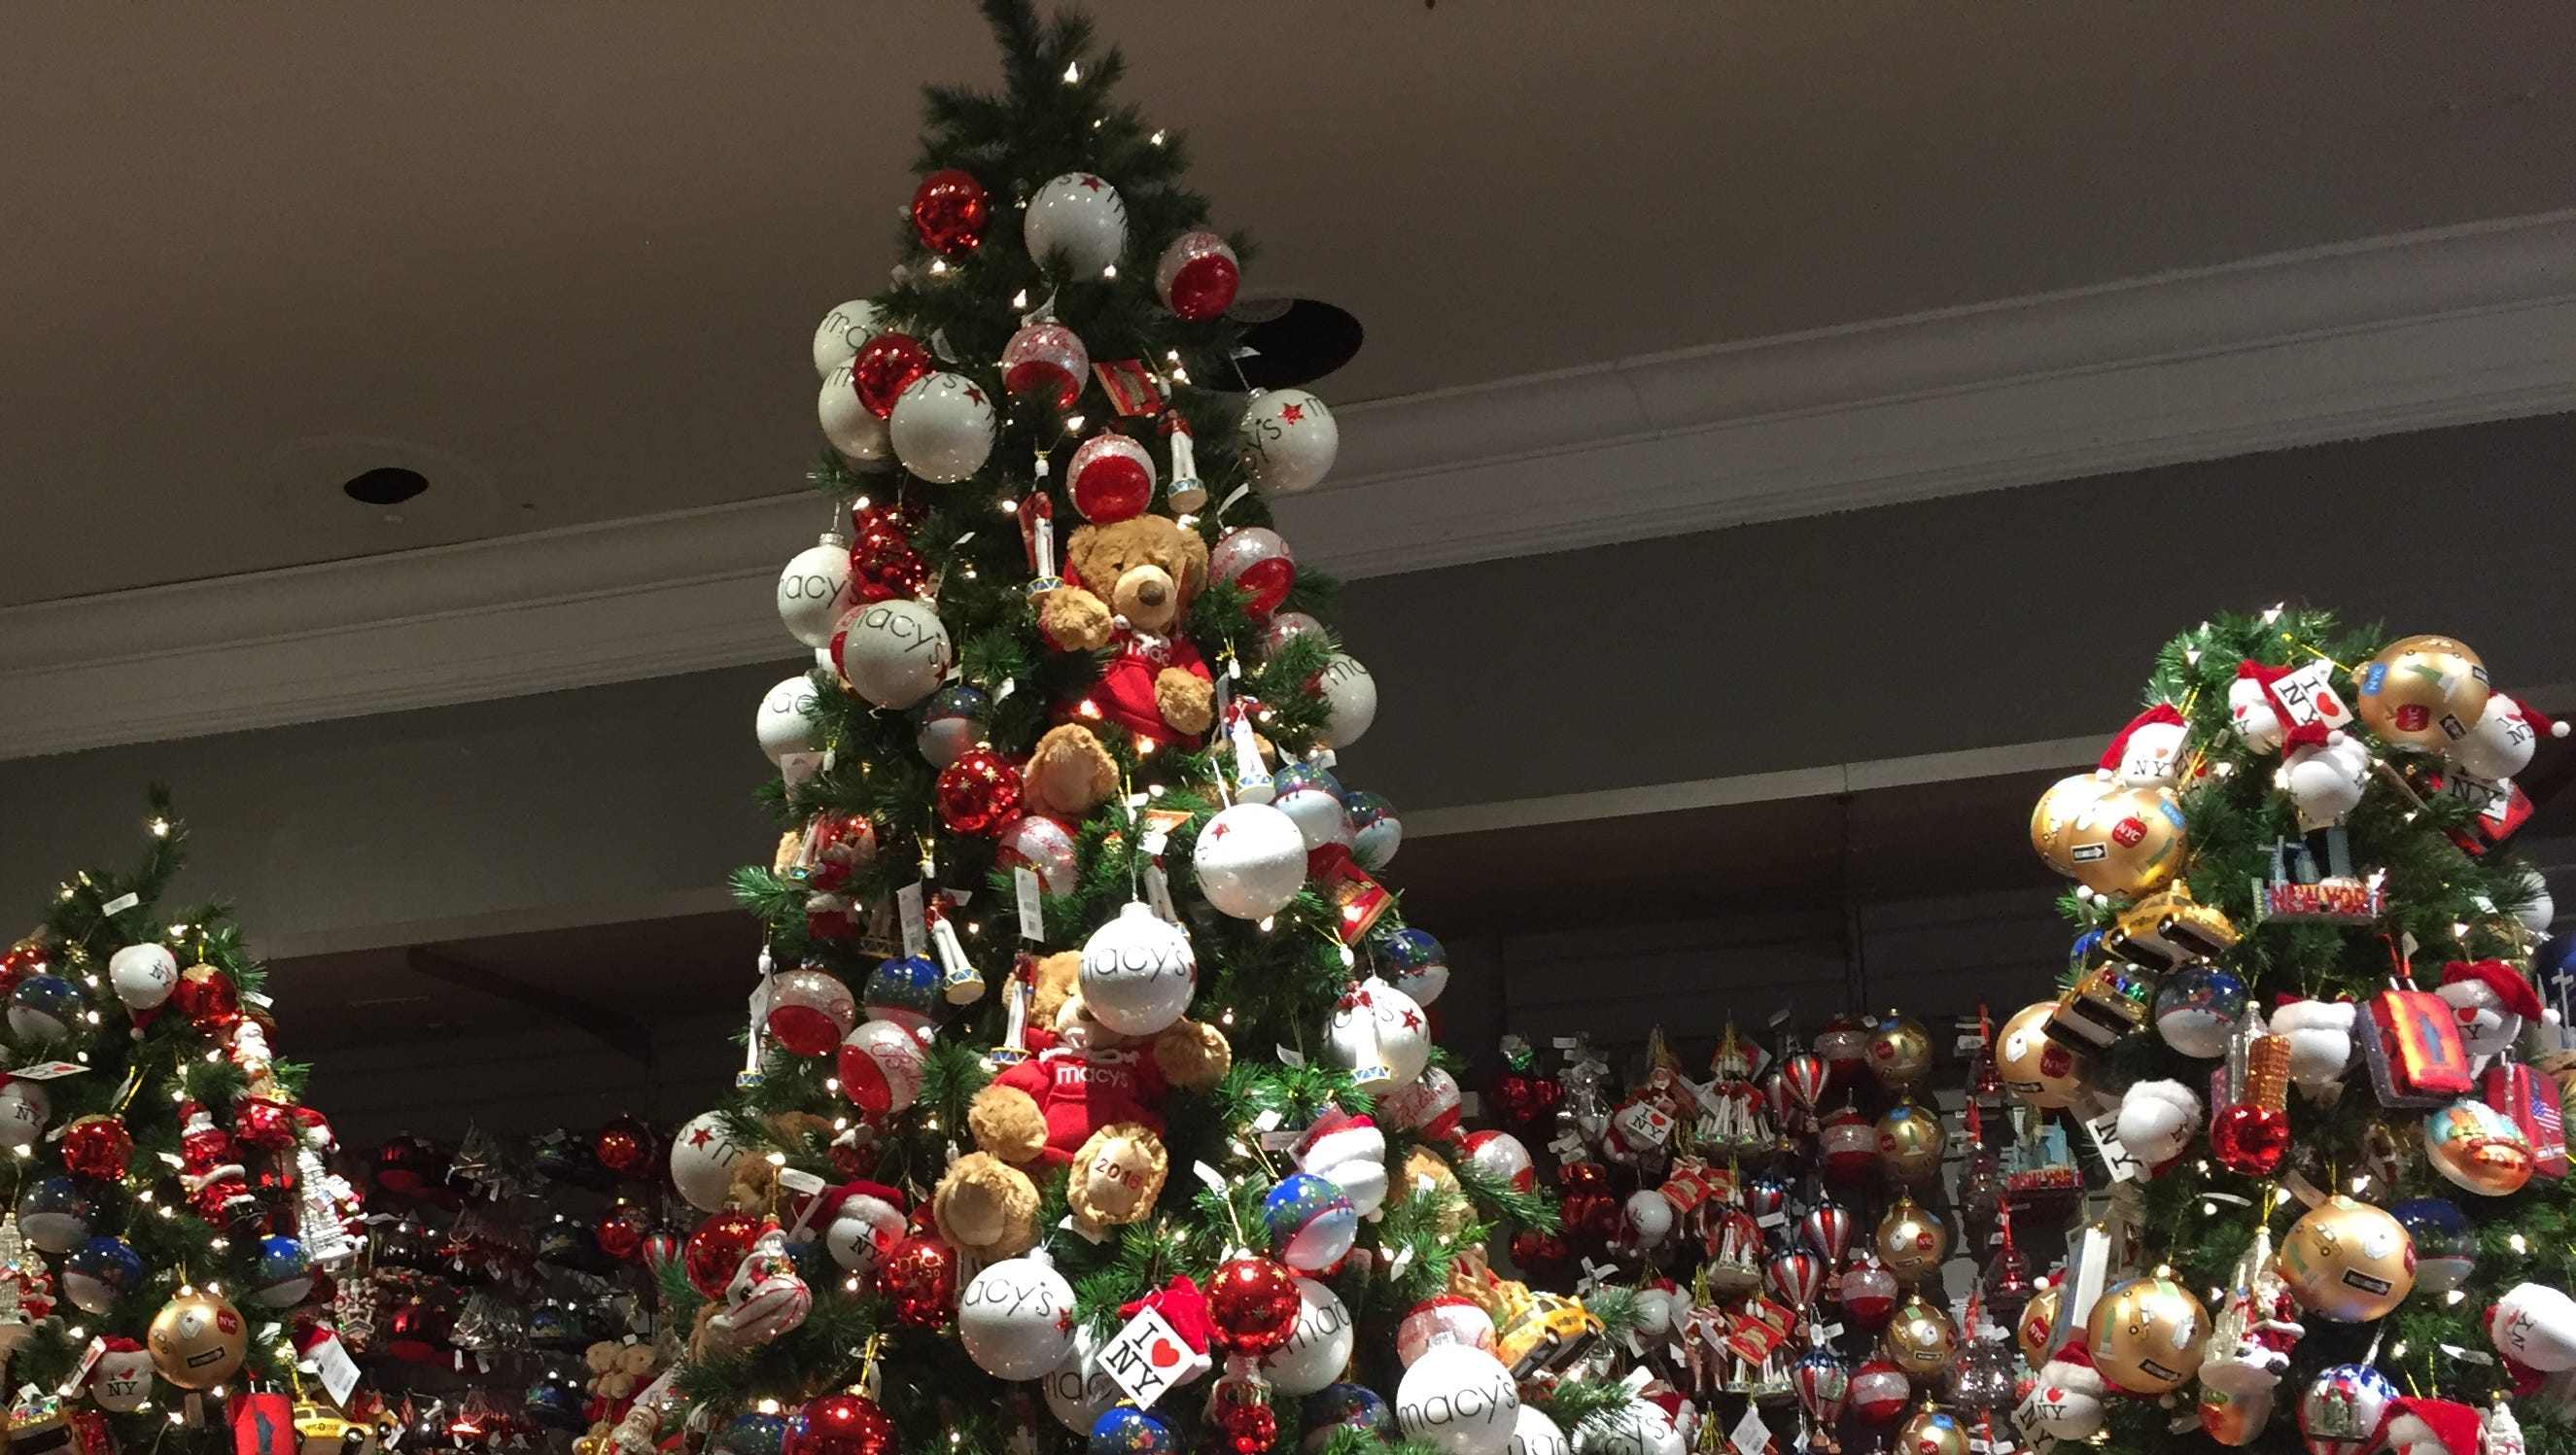 Macys Christmas Decorations 2020 Ho, ho, what? Holiday displays show up at some stores